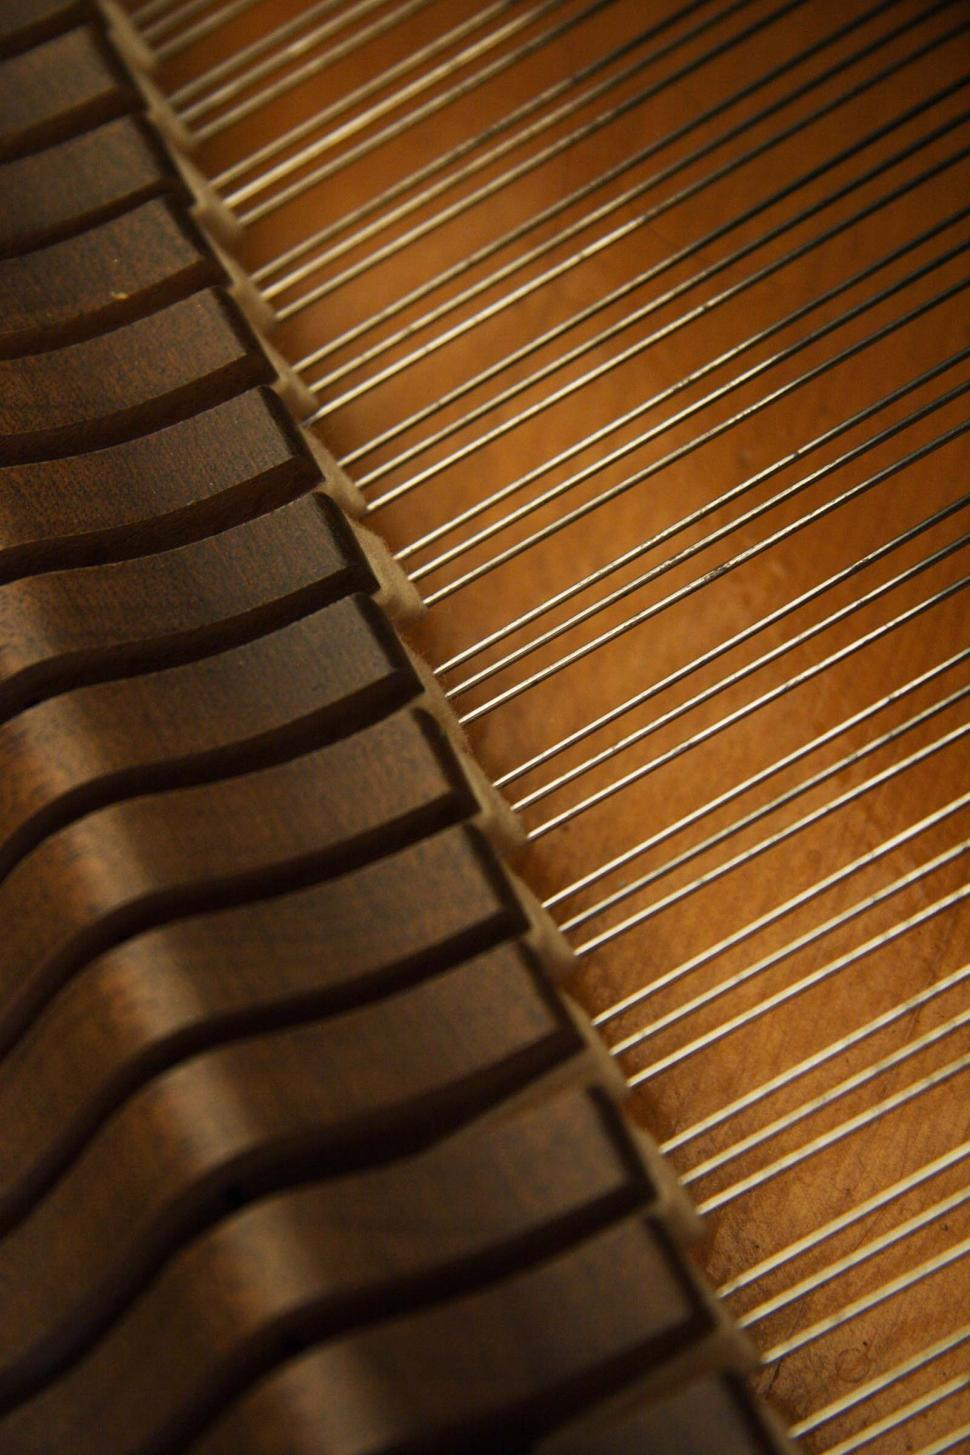 Download Free Stock HD Photo of Strings and hammer inside a piano Online